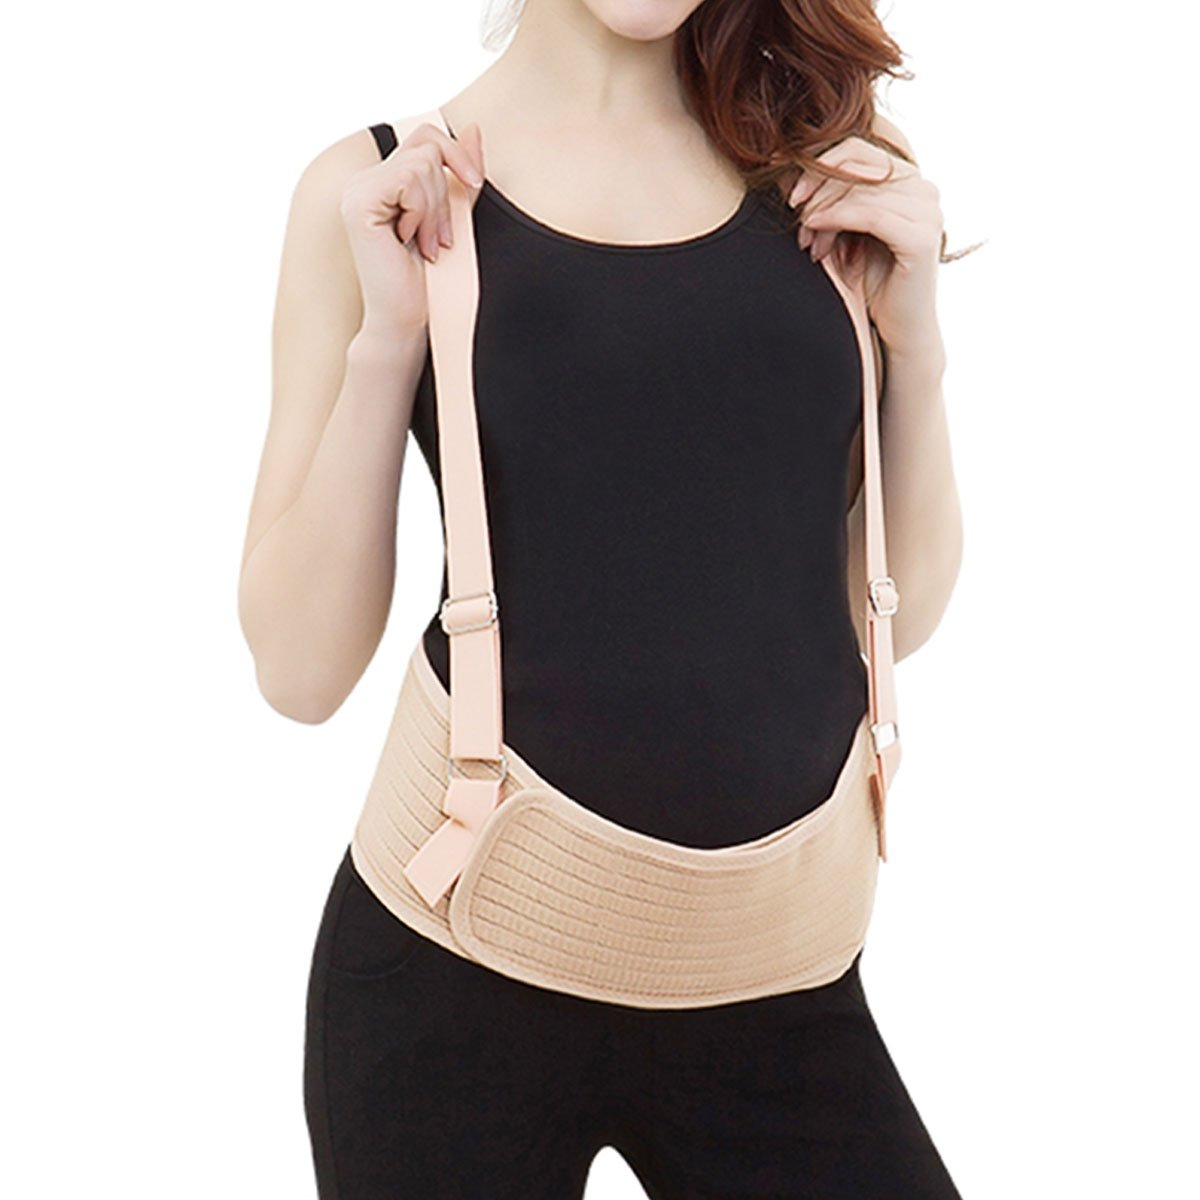 Maternity Belt, Pregnancy Belly Support Band Abdominal Binder, Lower Back and Pelvic Support One Size